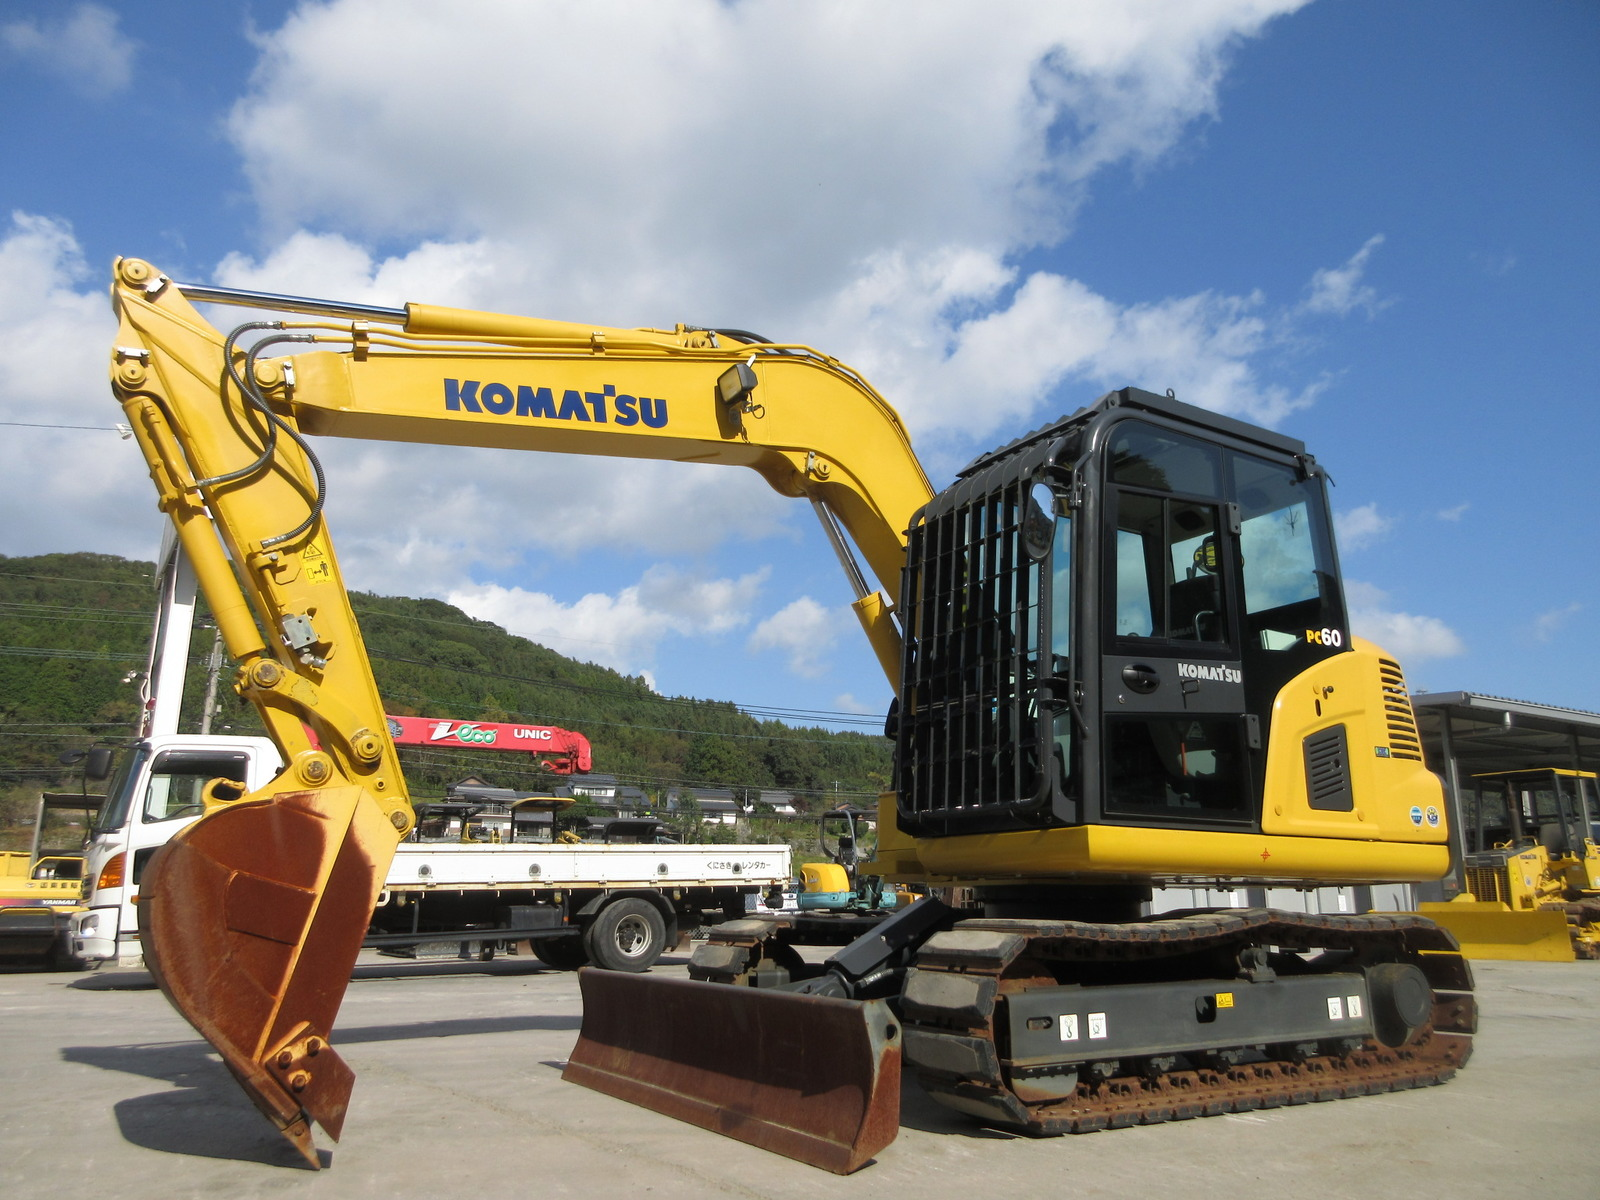 Used Construction Machine used Excavator KOMATSU PC60-8 Photos